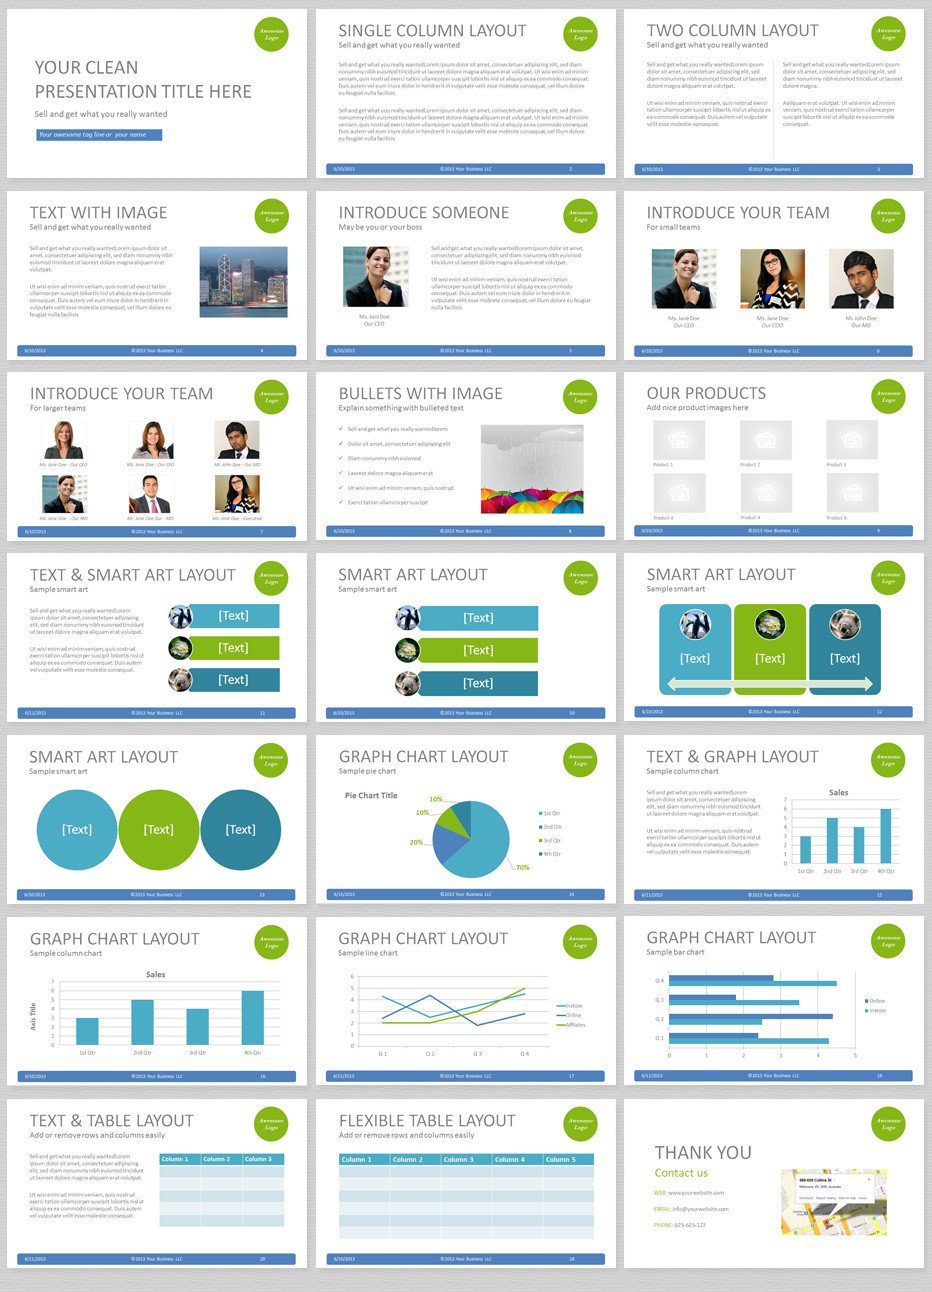 Powerpoint Presentation Outline Example Simple Powerpoint Template with Clean and Elegant Easy to